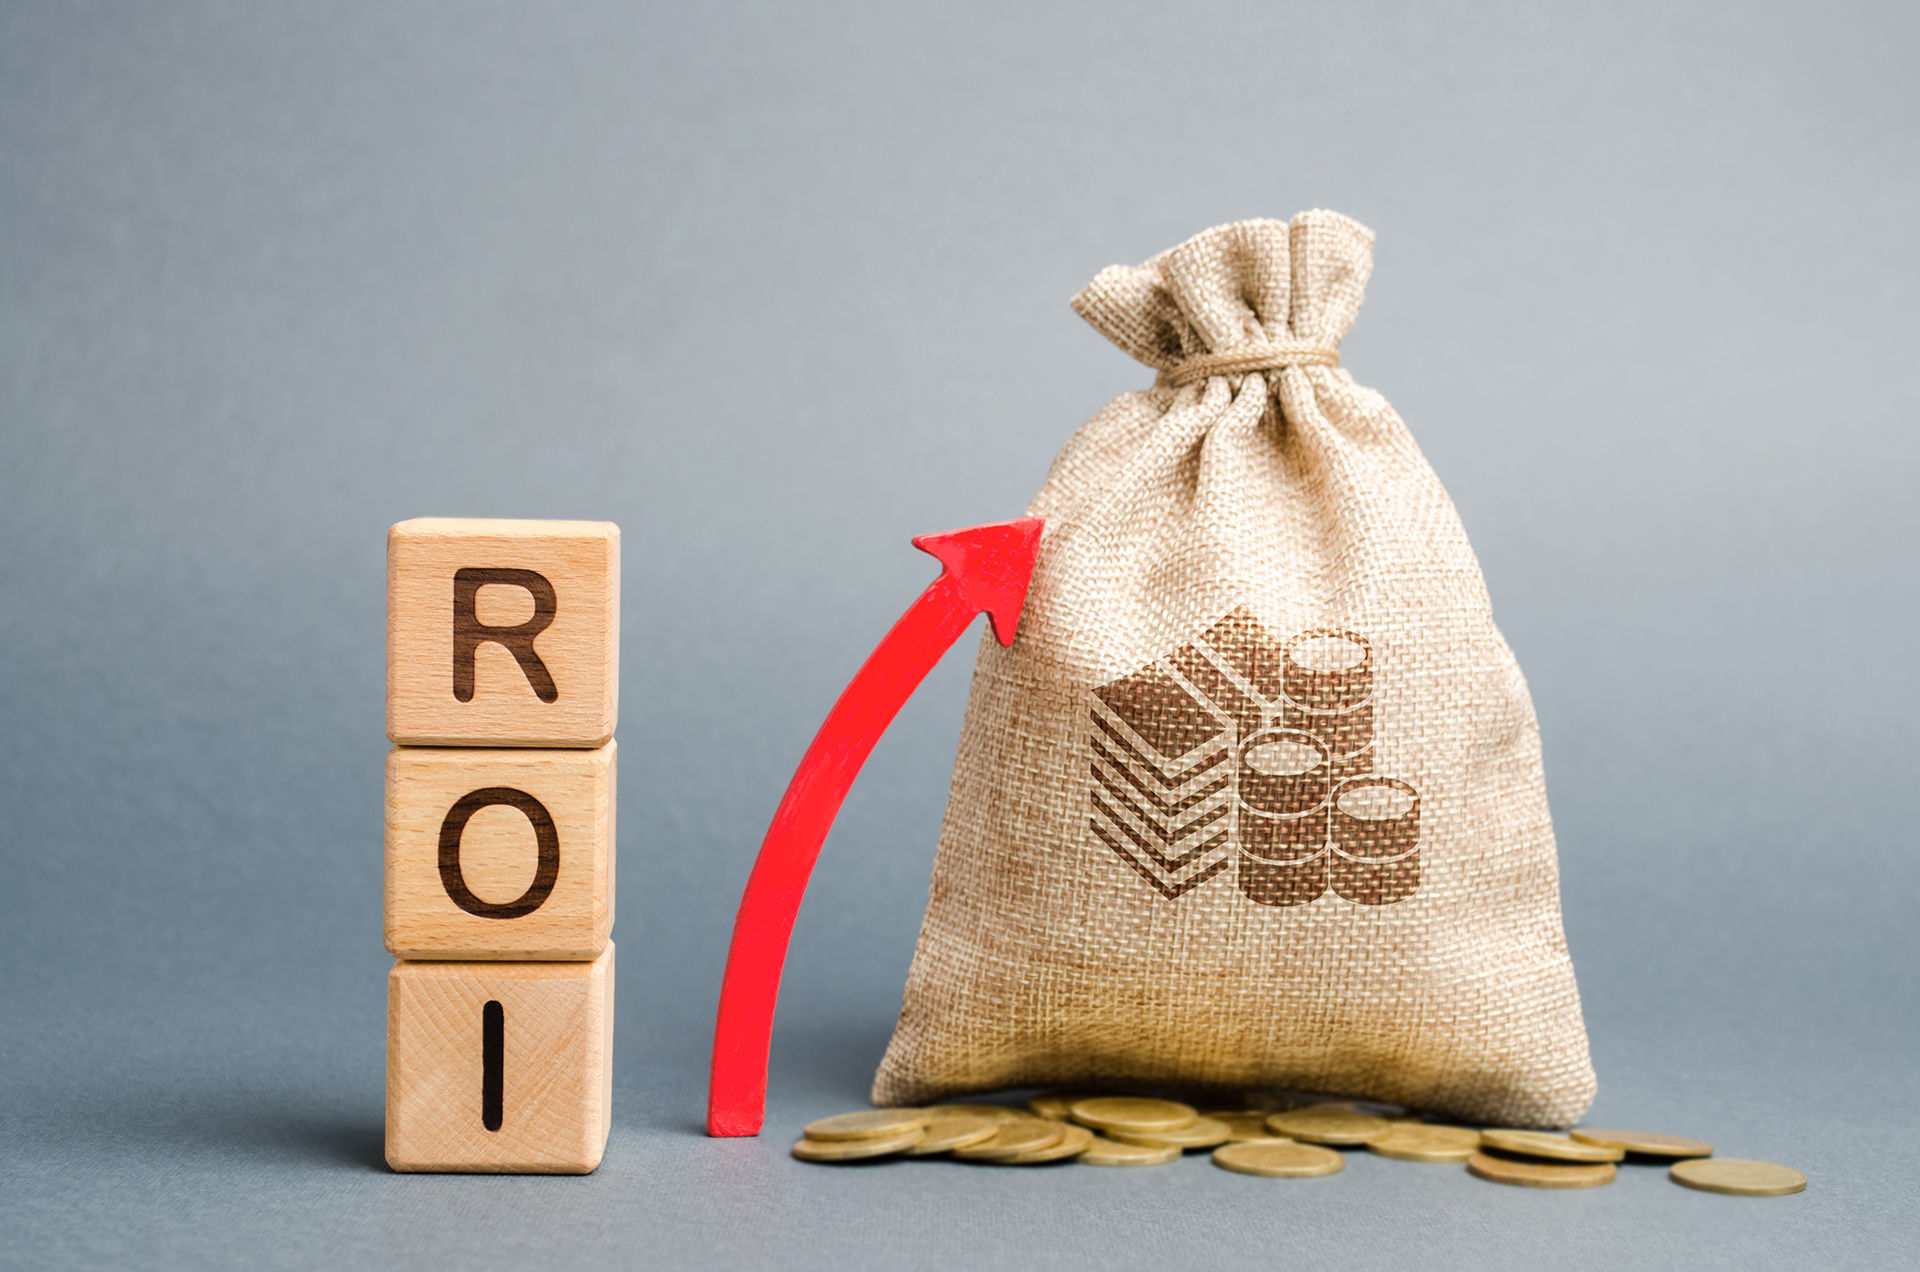 roi - como calcular retorno sobre investimento no marketing